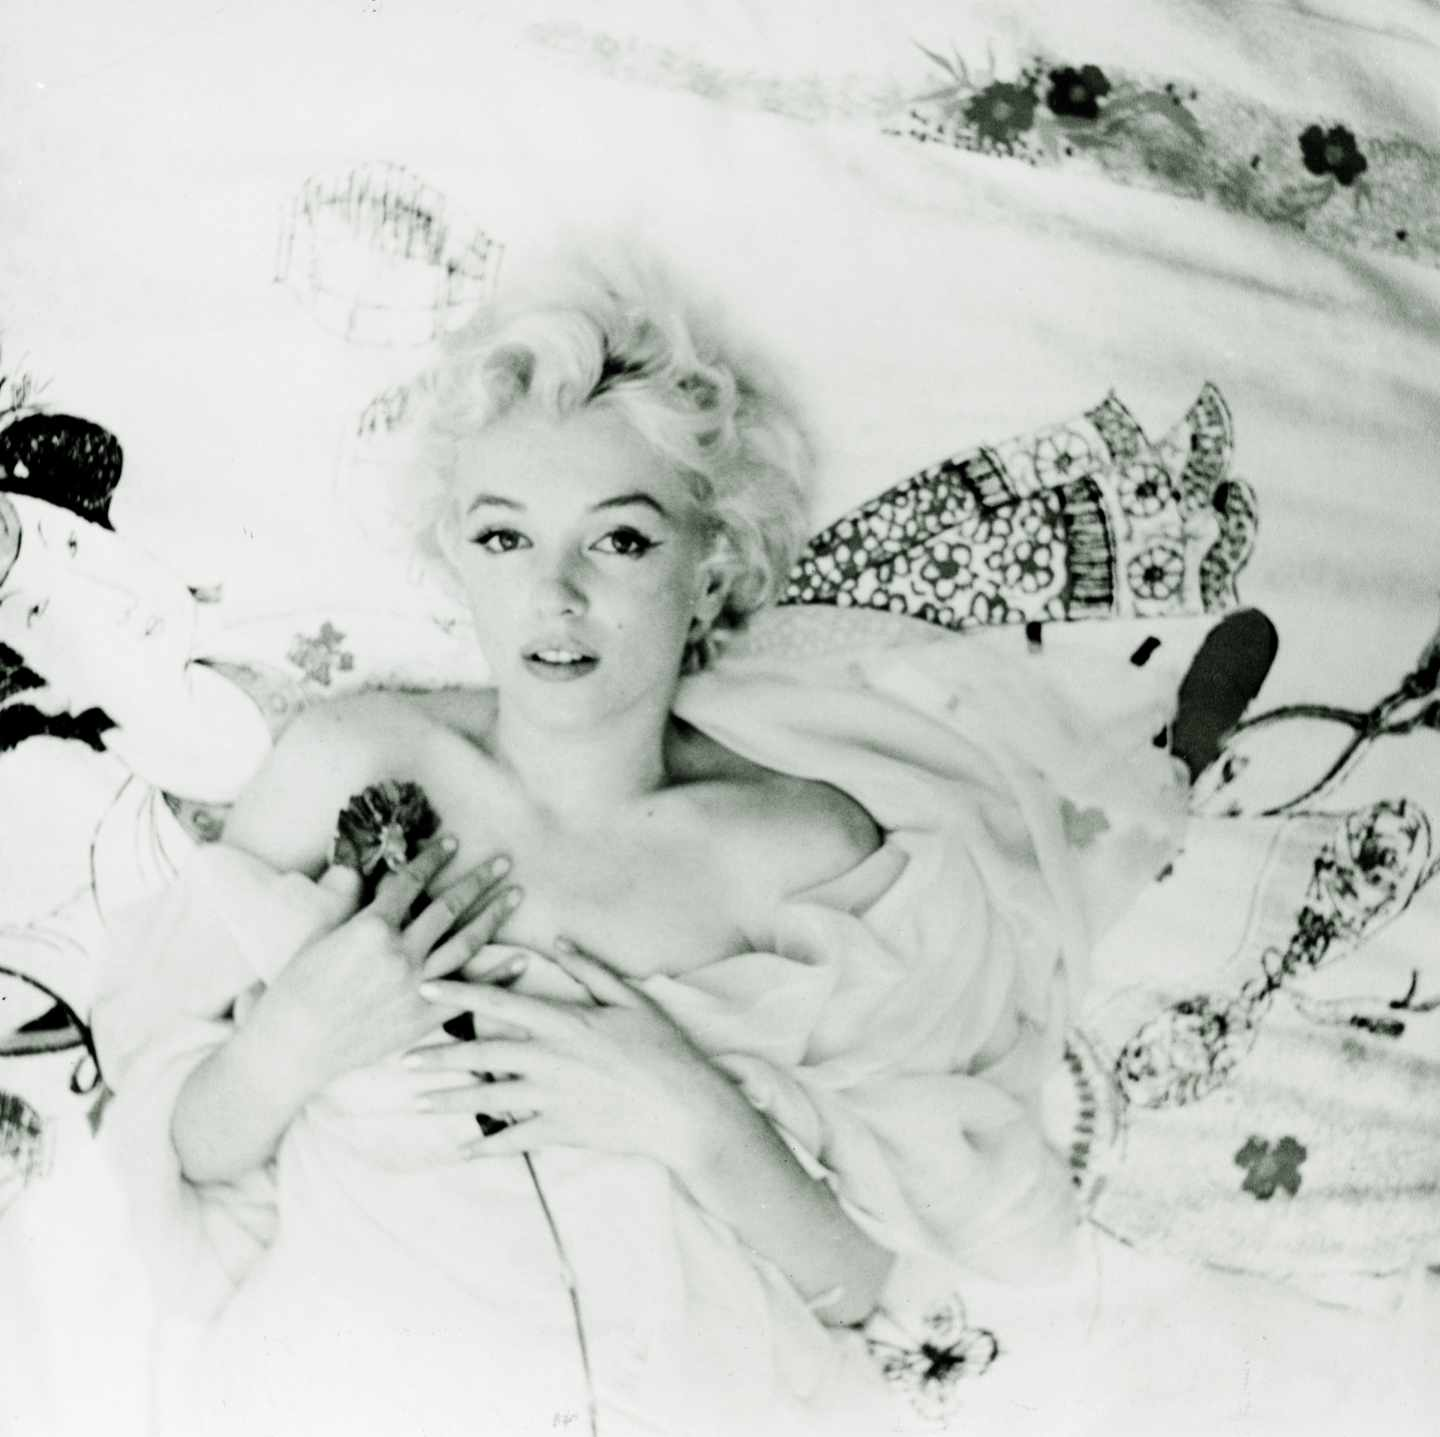 ©The Cecil Beaton Studio Archive at Sotheby's